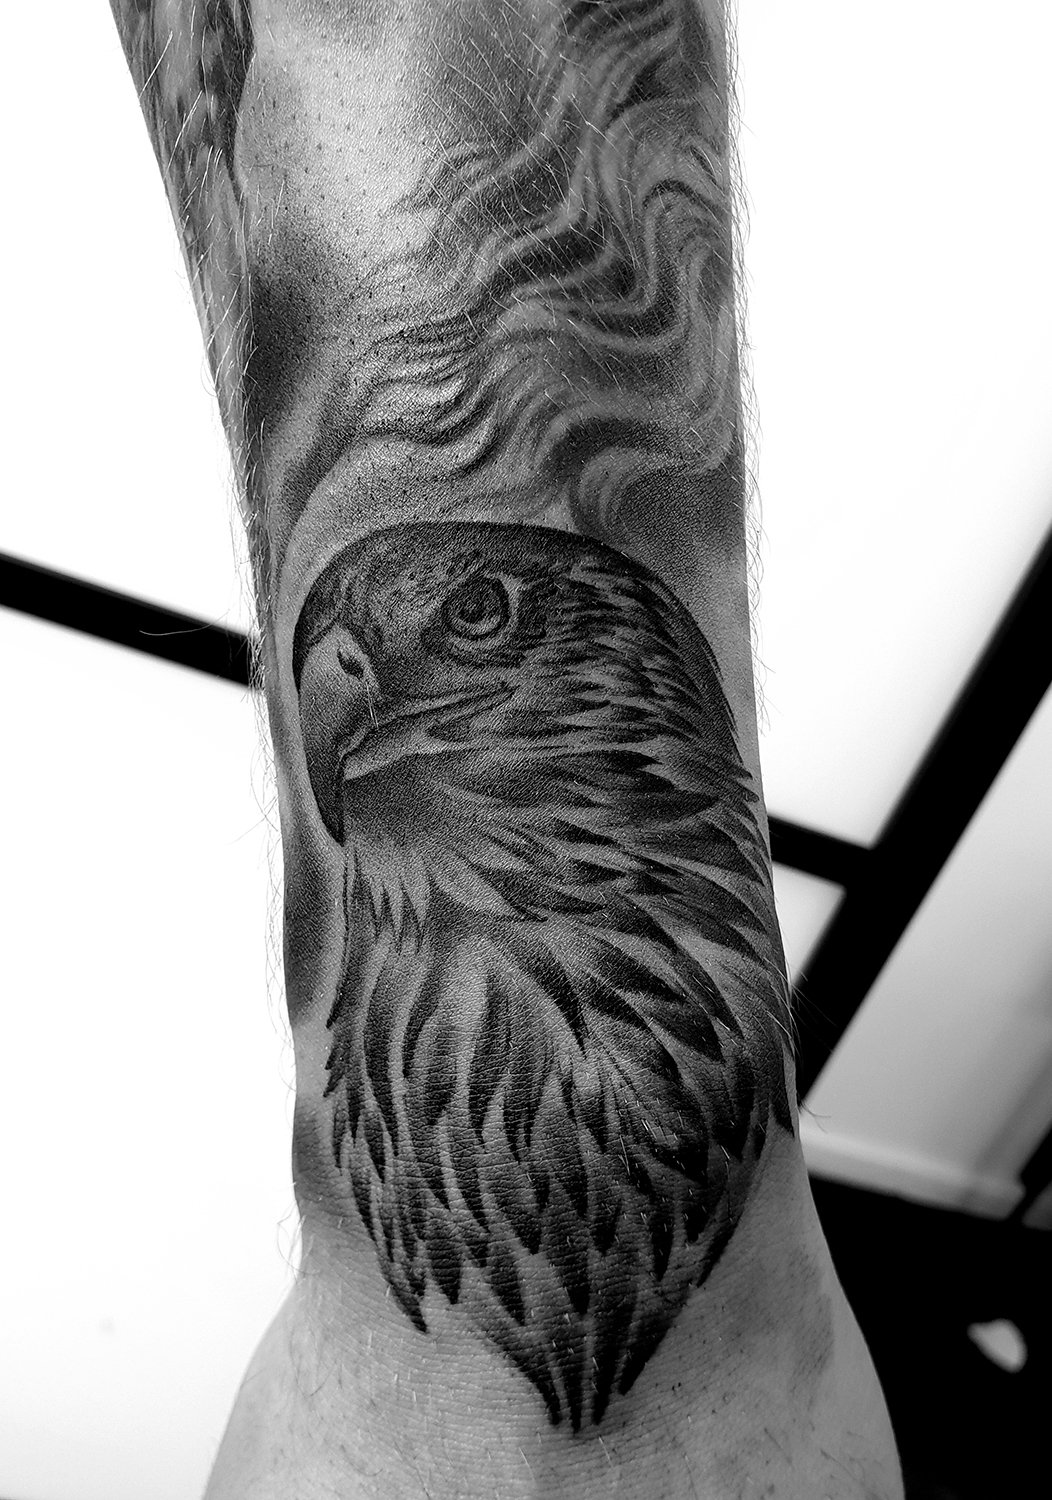 eagle wrist arm tattoo sleeve bird realism mcr